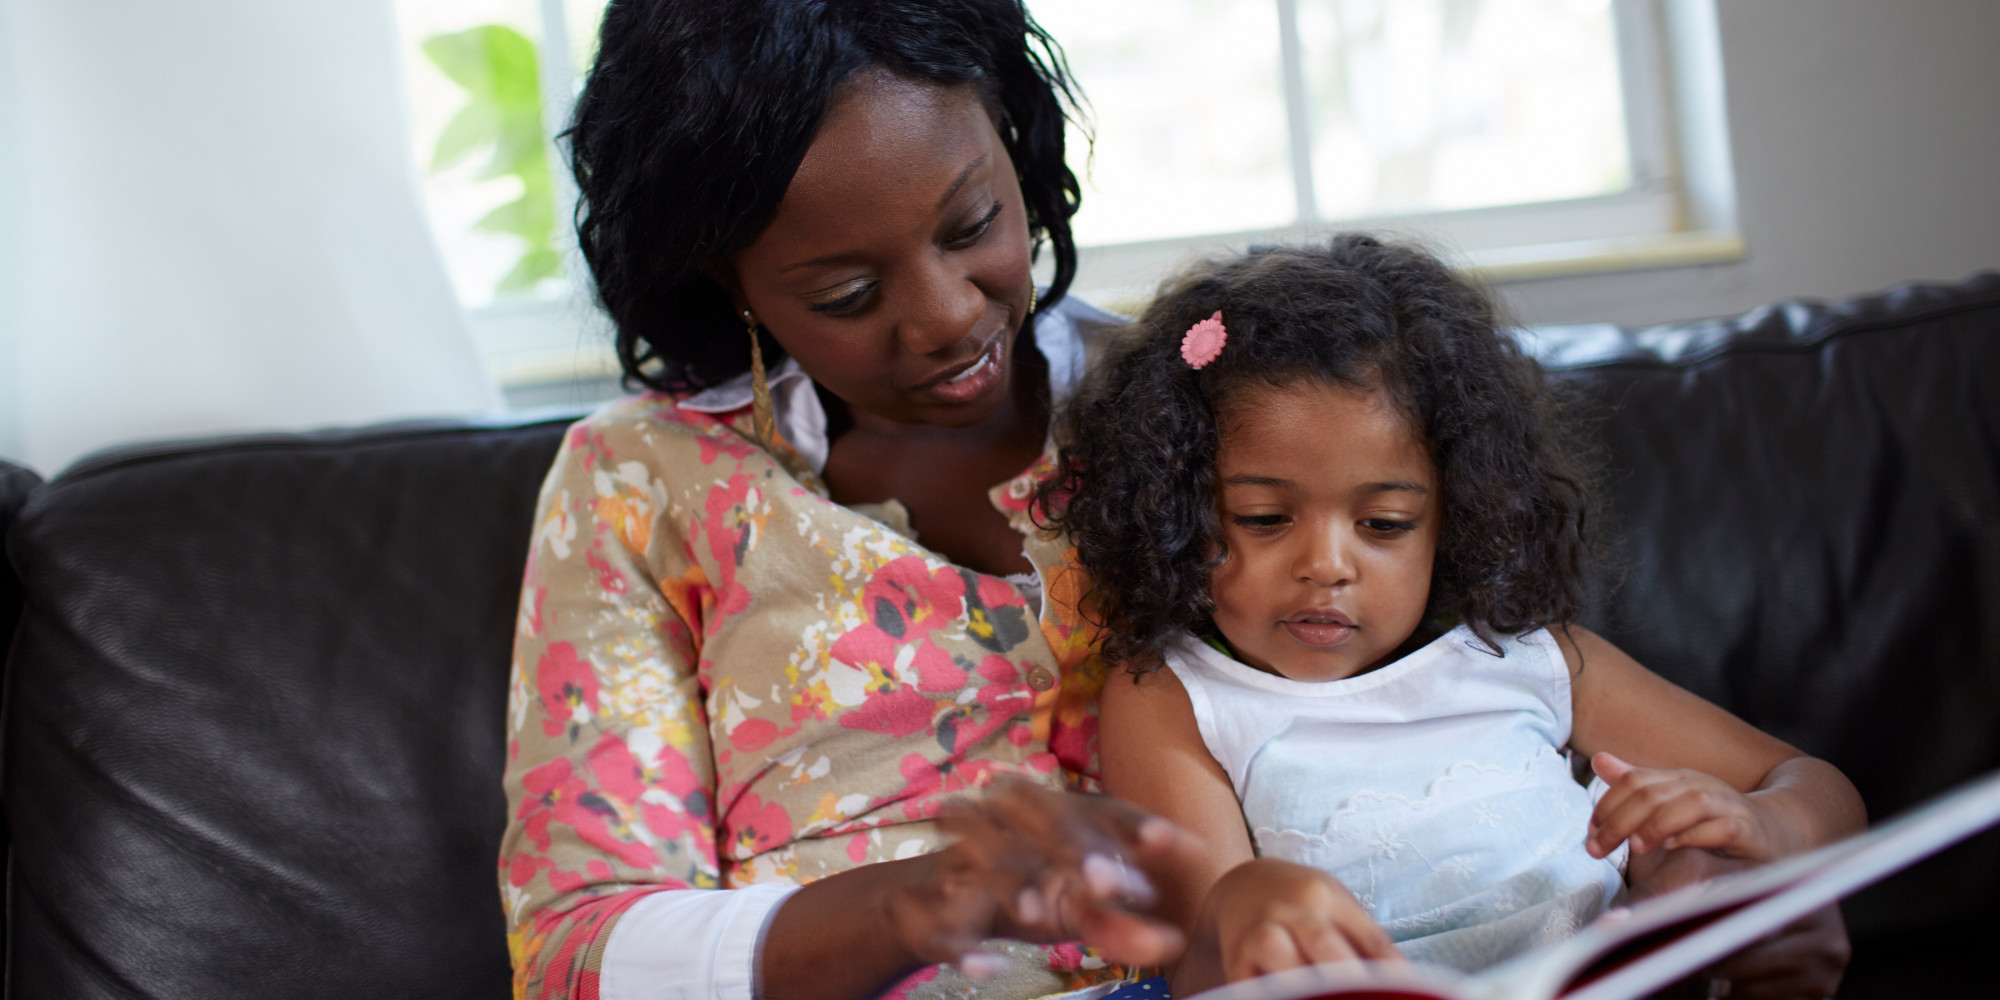 routines parent reading child children study huffpost emotionally advanced socially